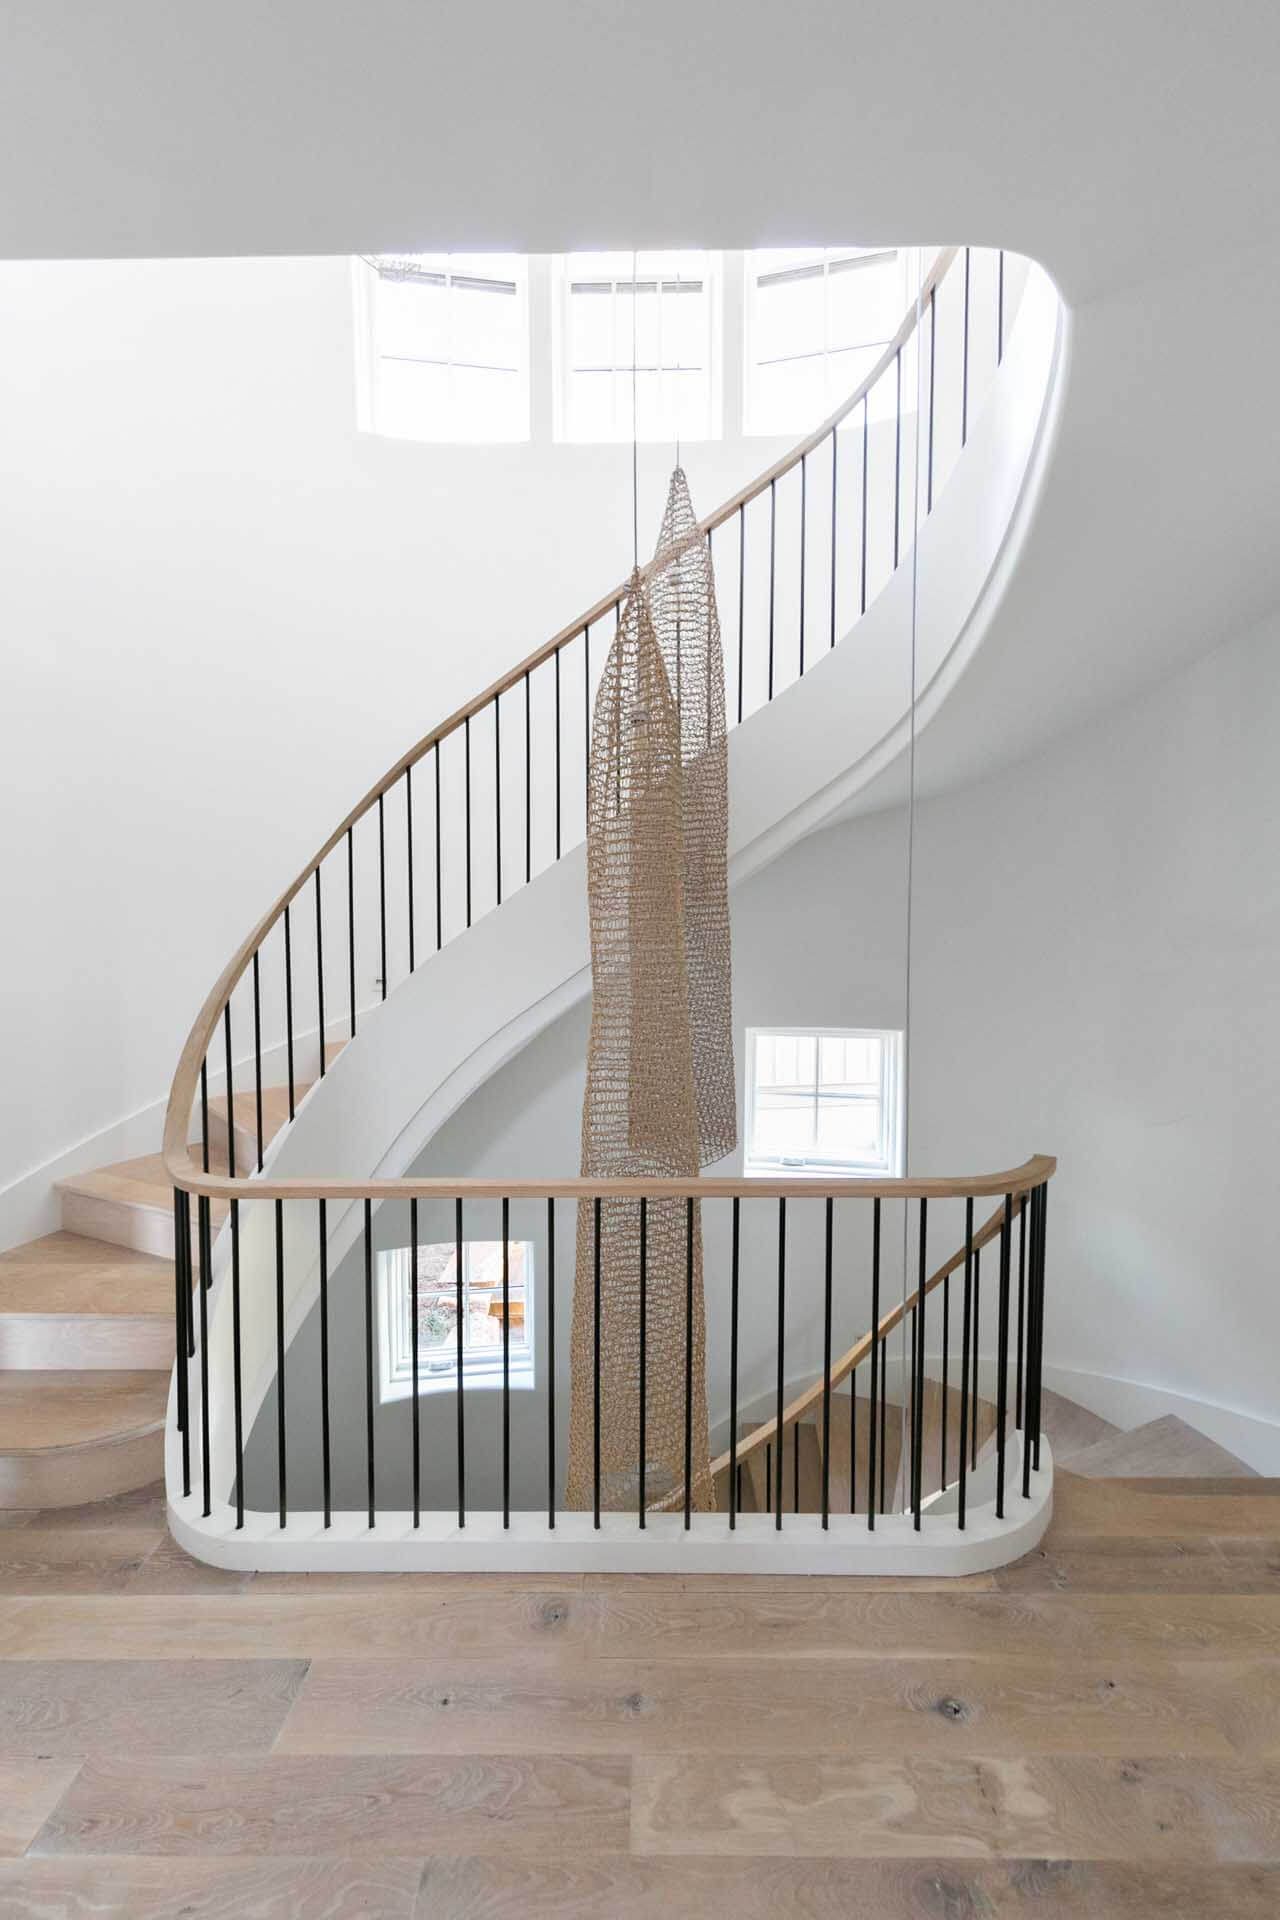 Winding staircase with hardwood treads and decor hanging down beside the stairs.